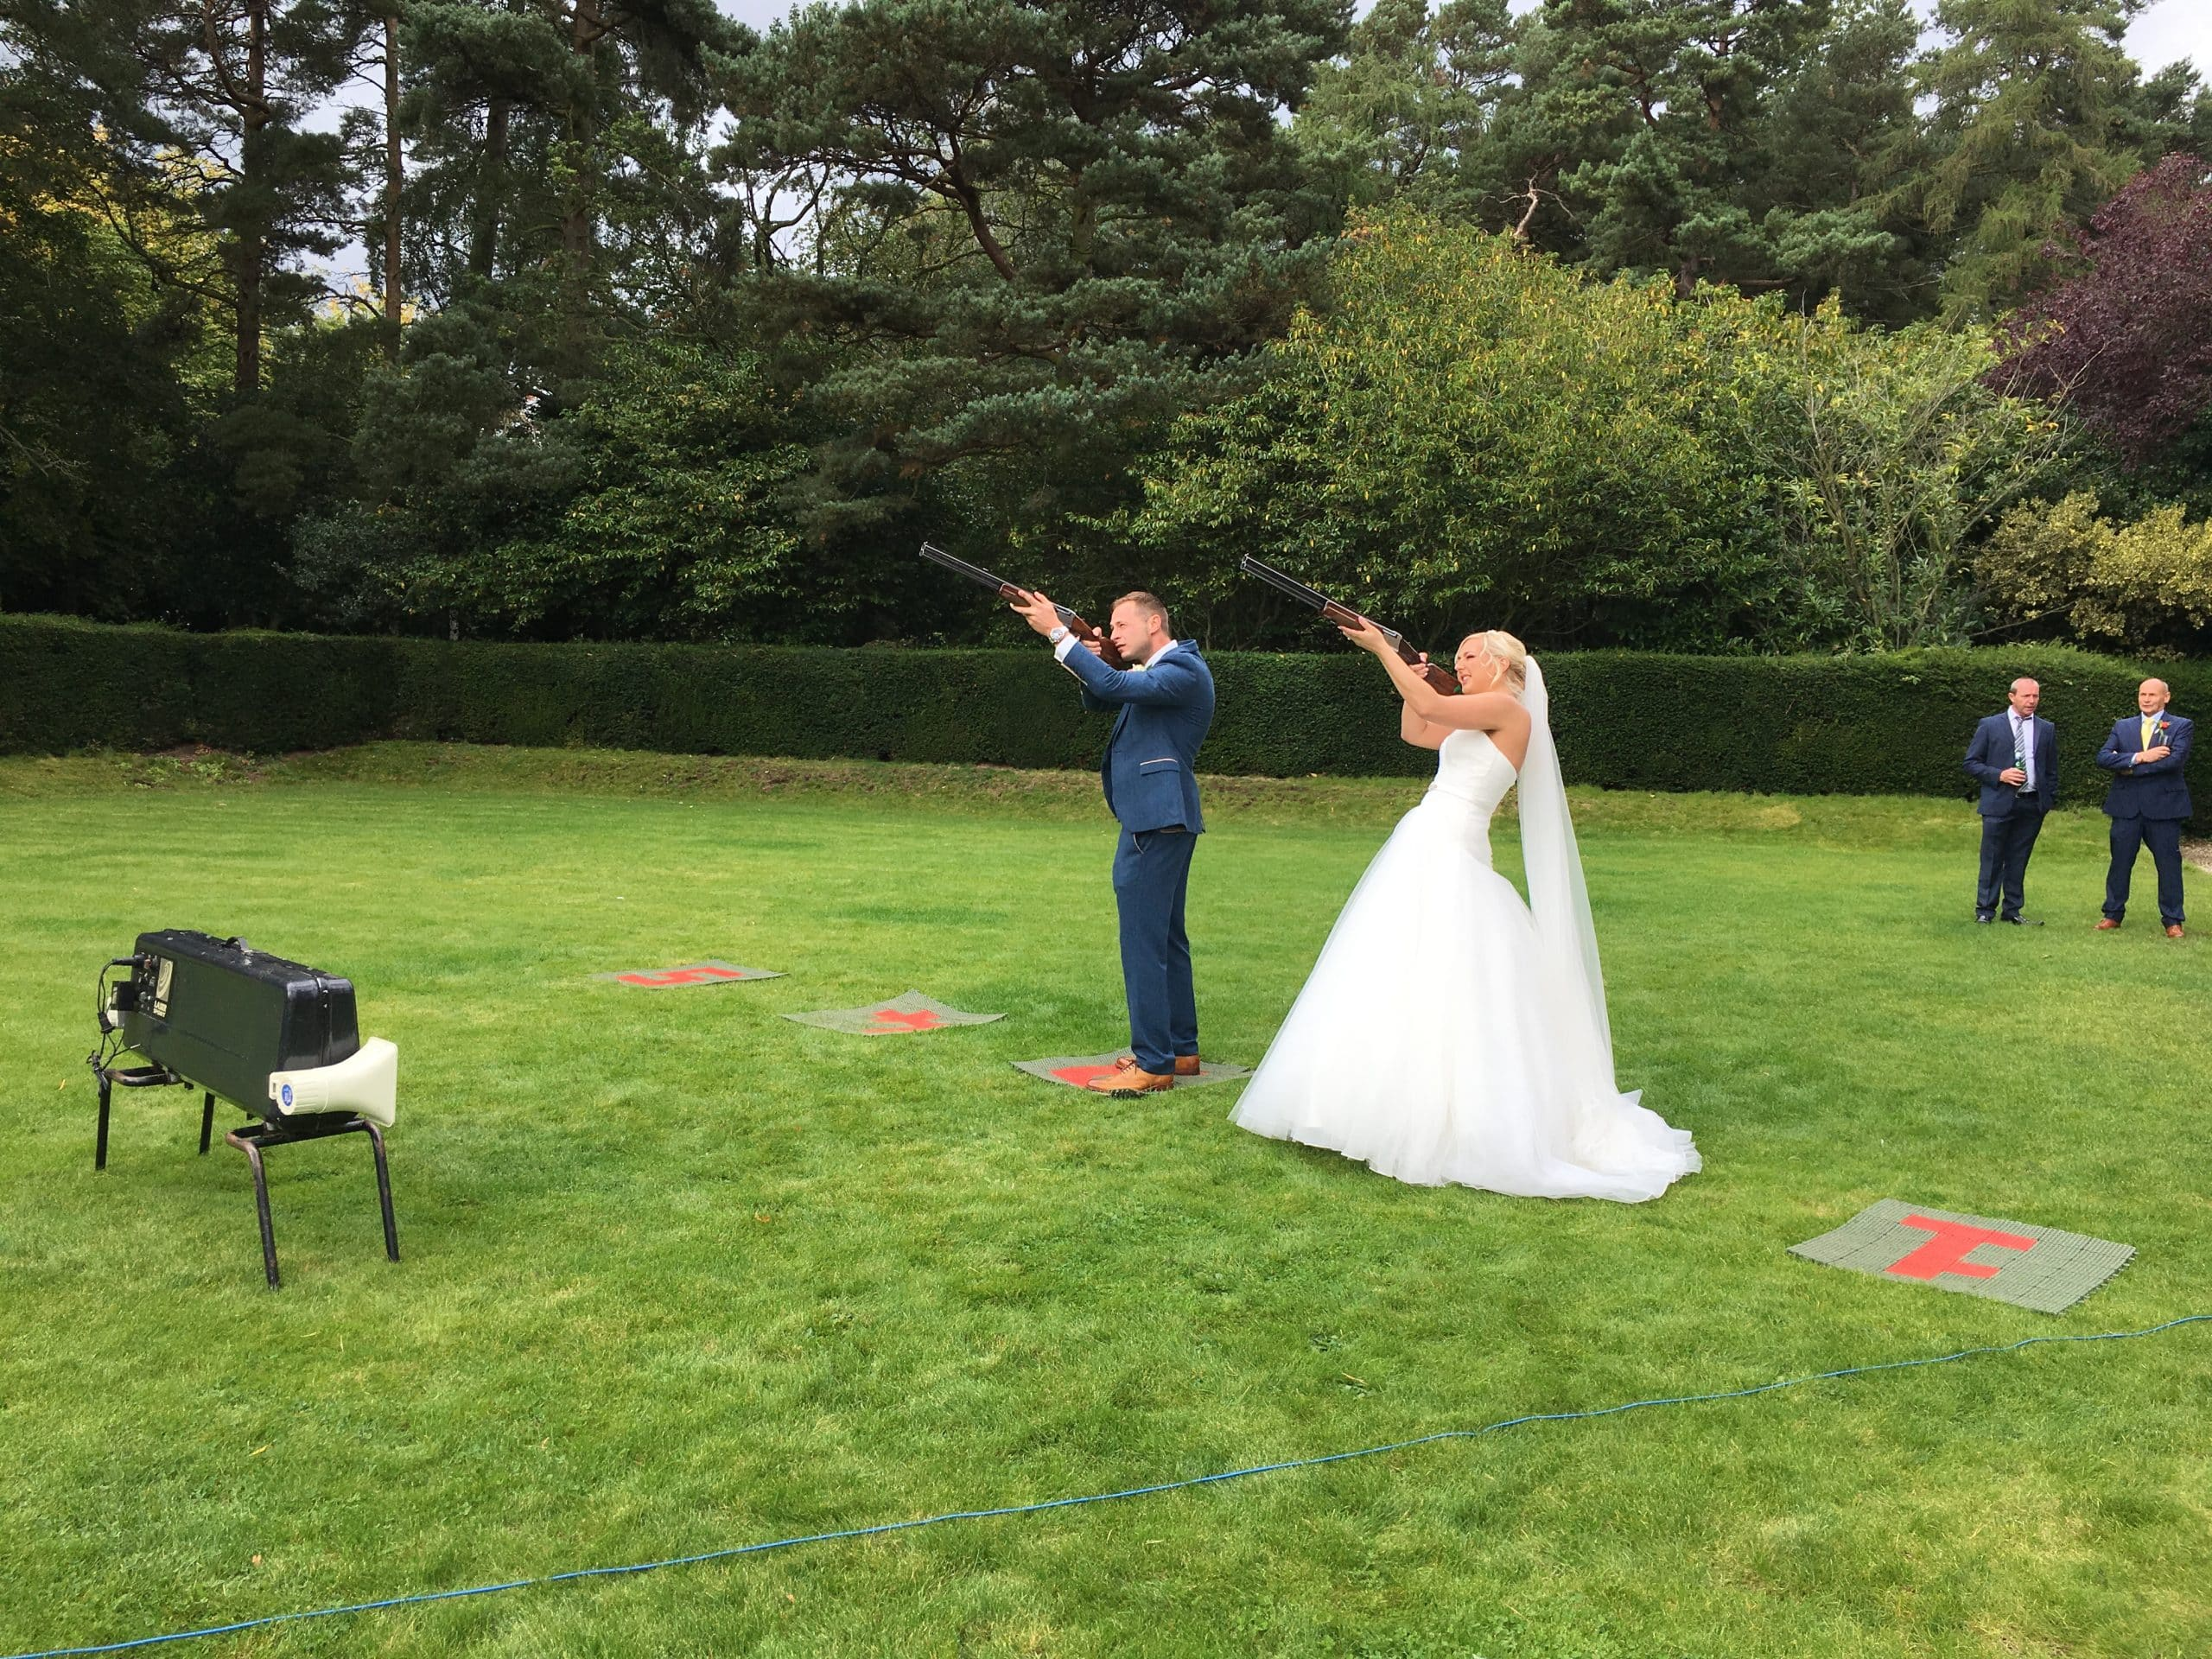 Bride and Groom Laser Clay Shooting